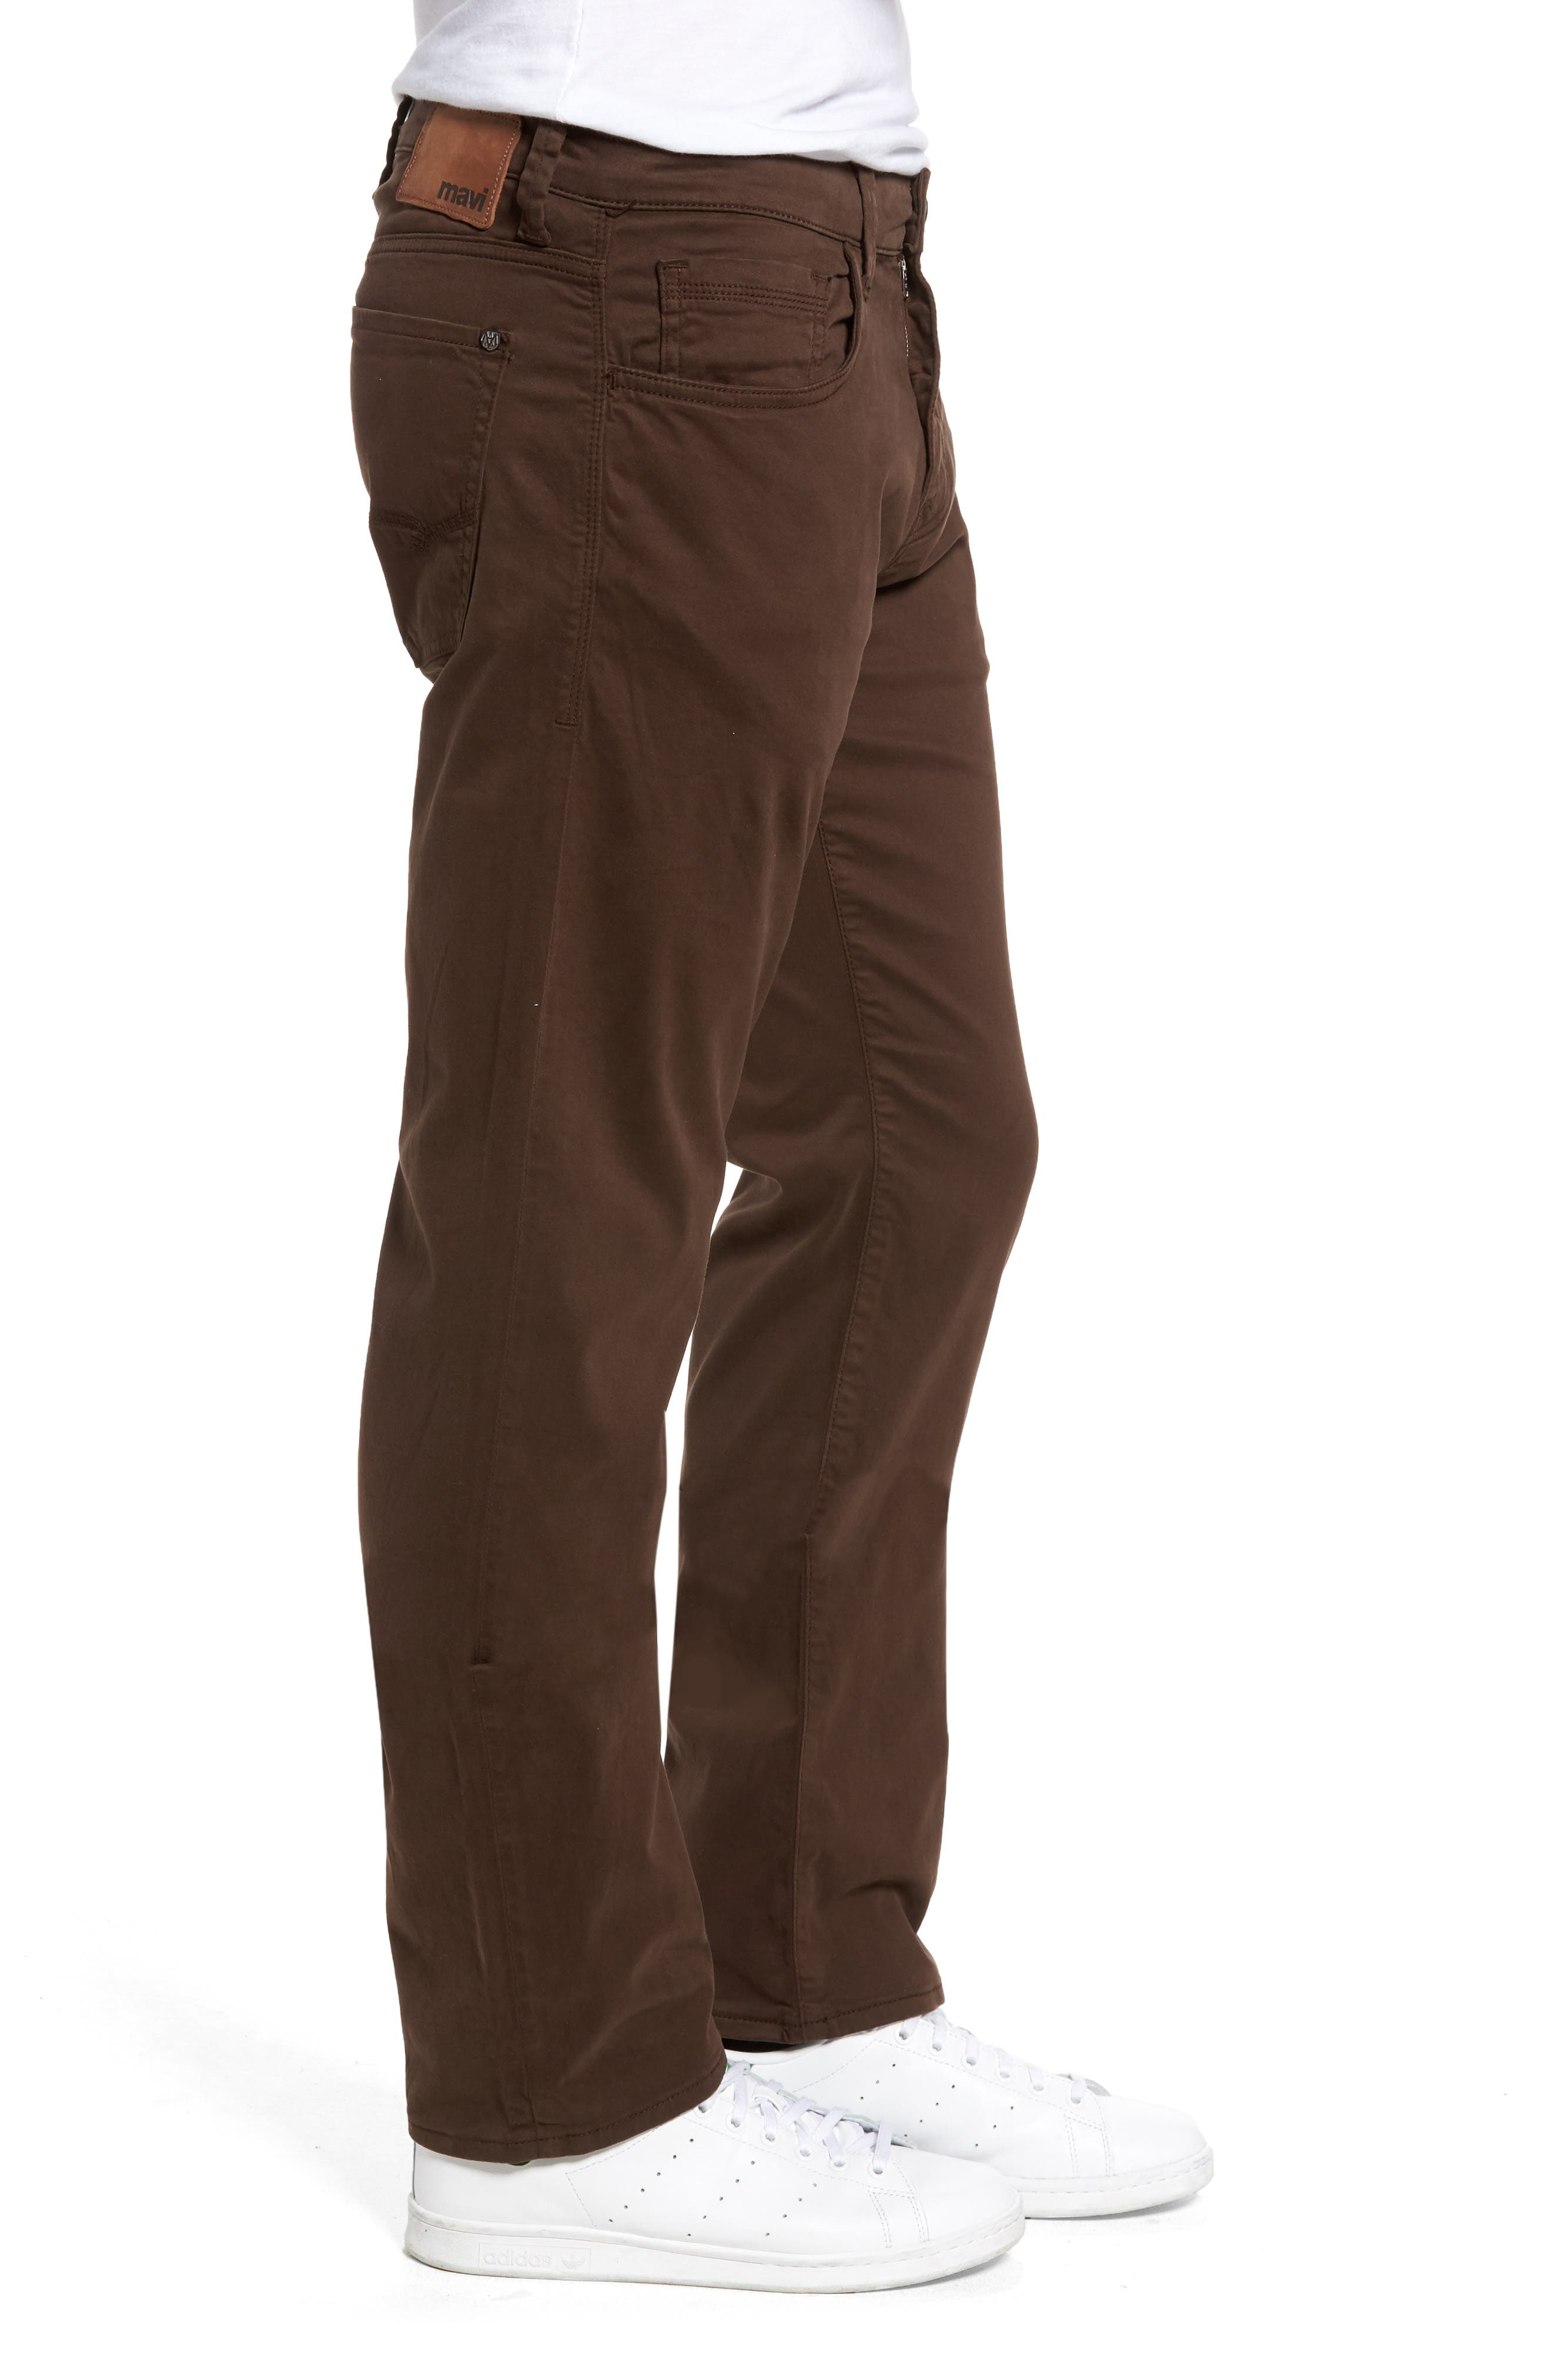 Zach Straight Fit Twill Pants,                             Alternate thumbnail 3, color,                             COFFEE BEAN TWILL